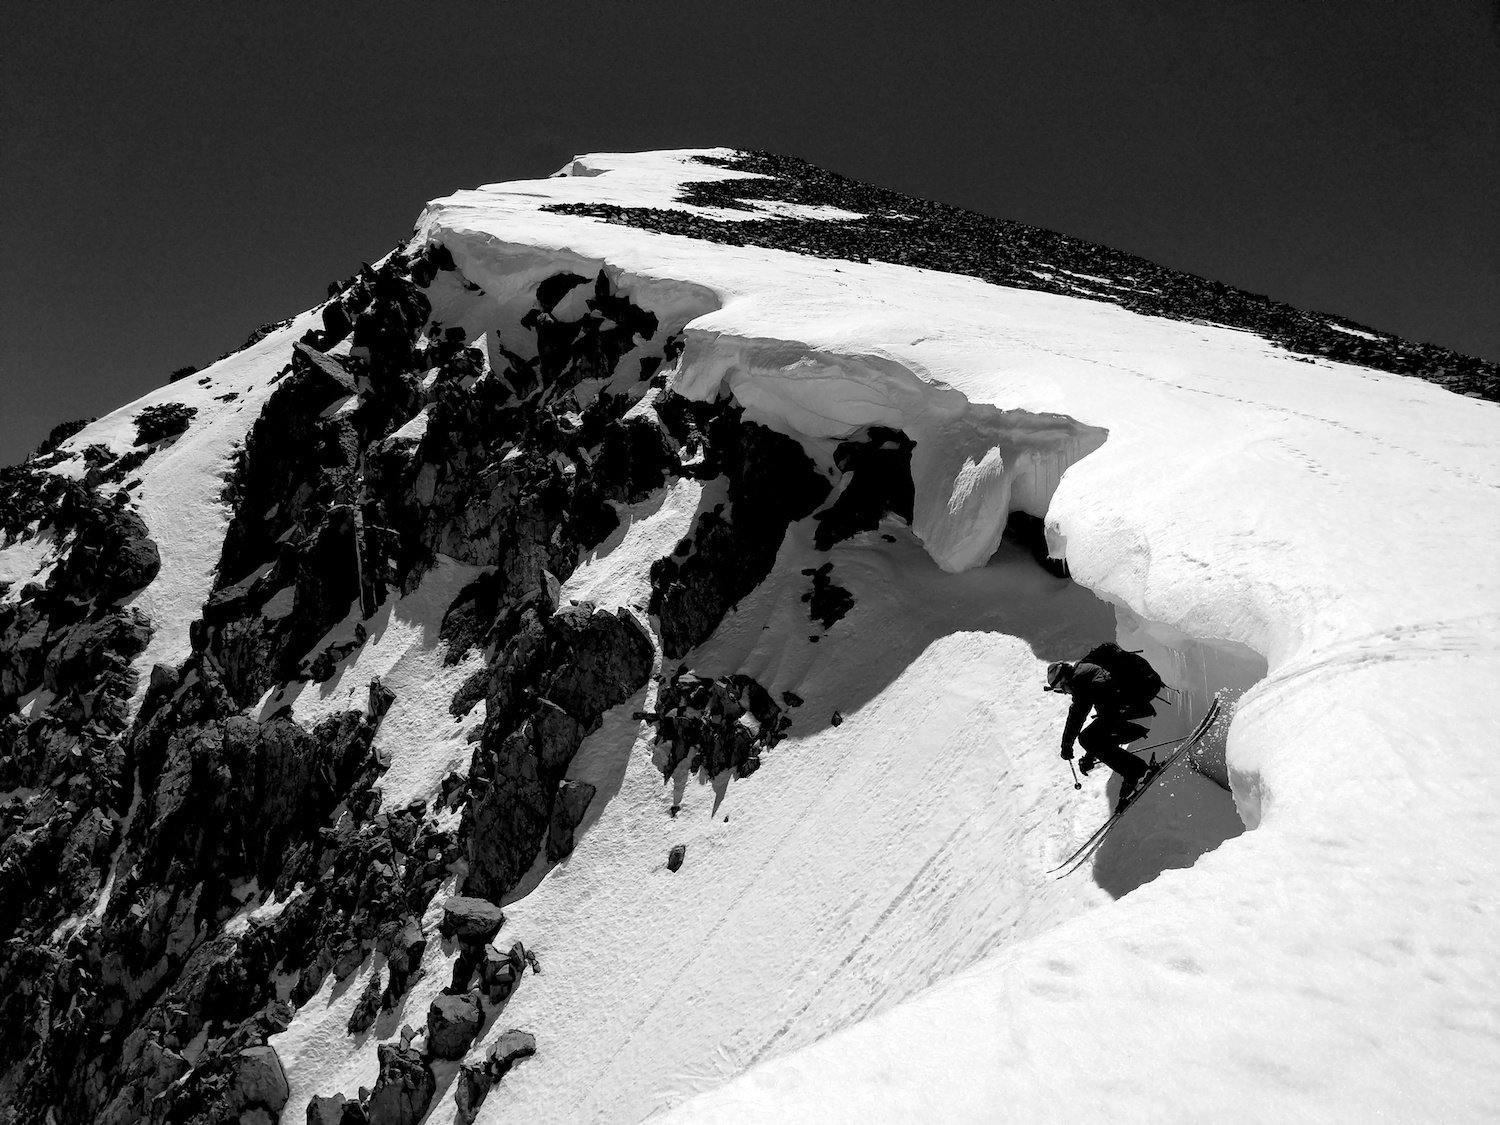 Solstace Couloir: Tioga Pass Ca June 12